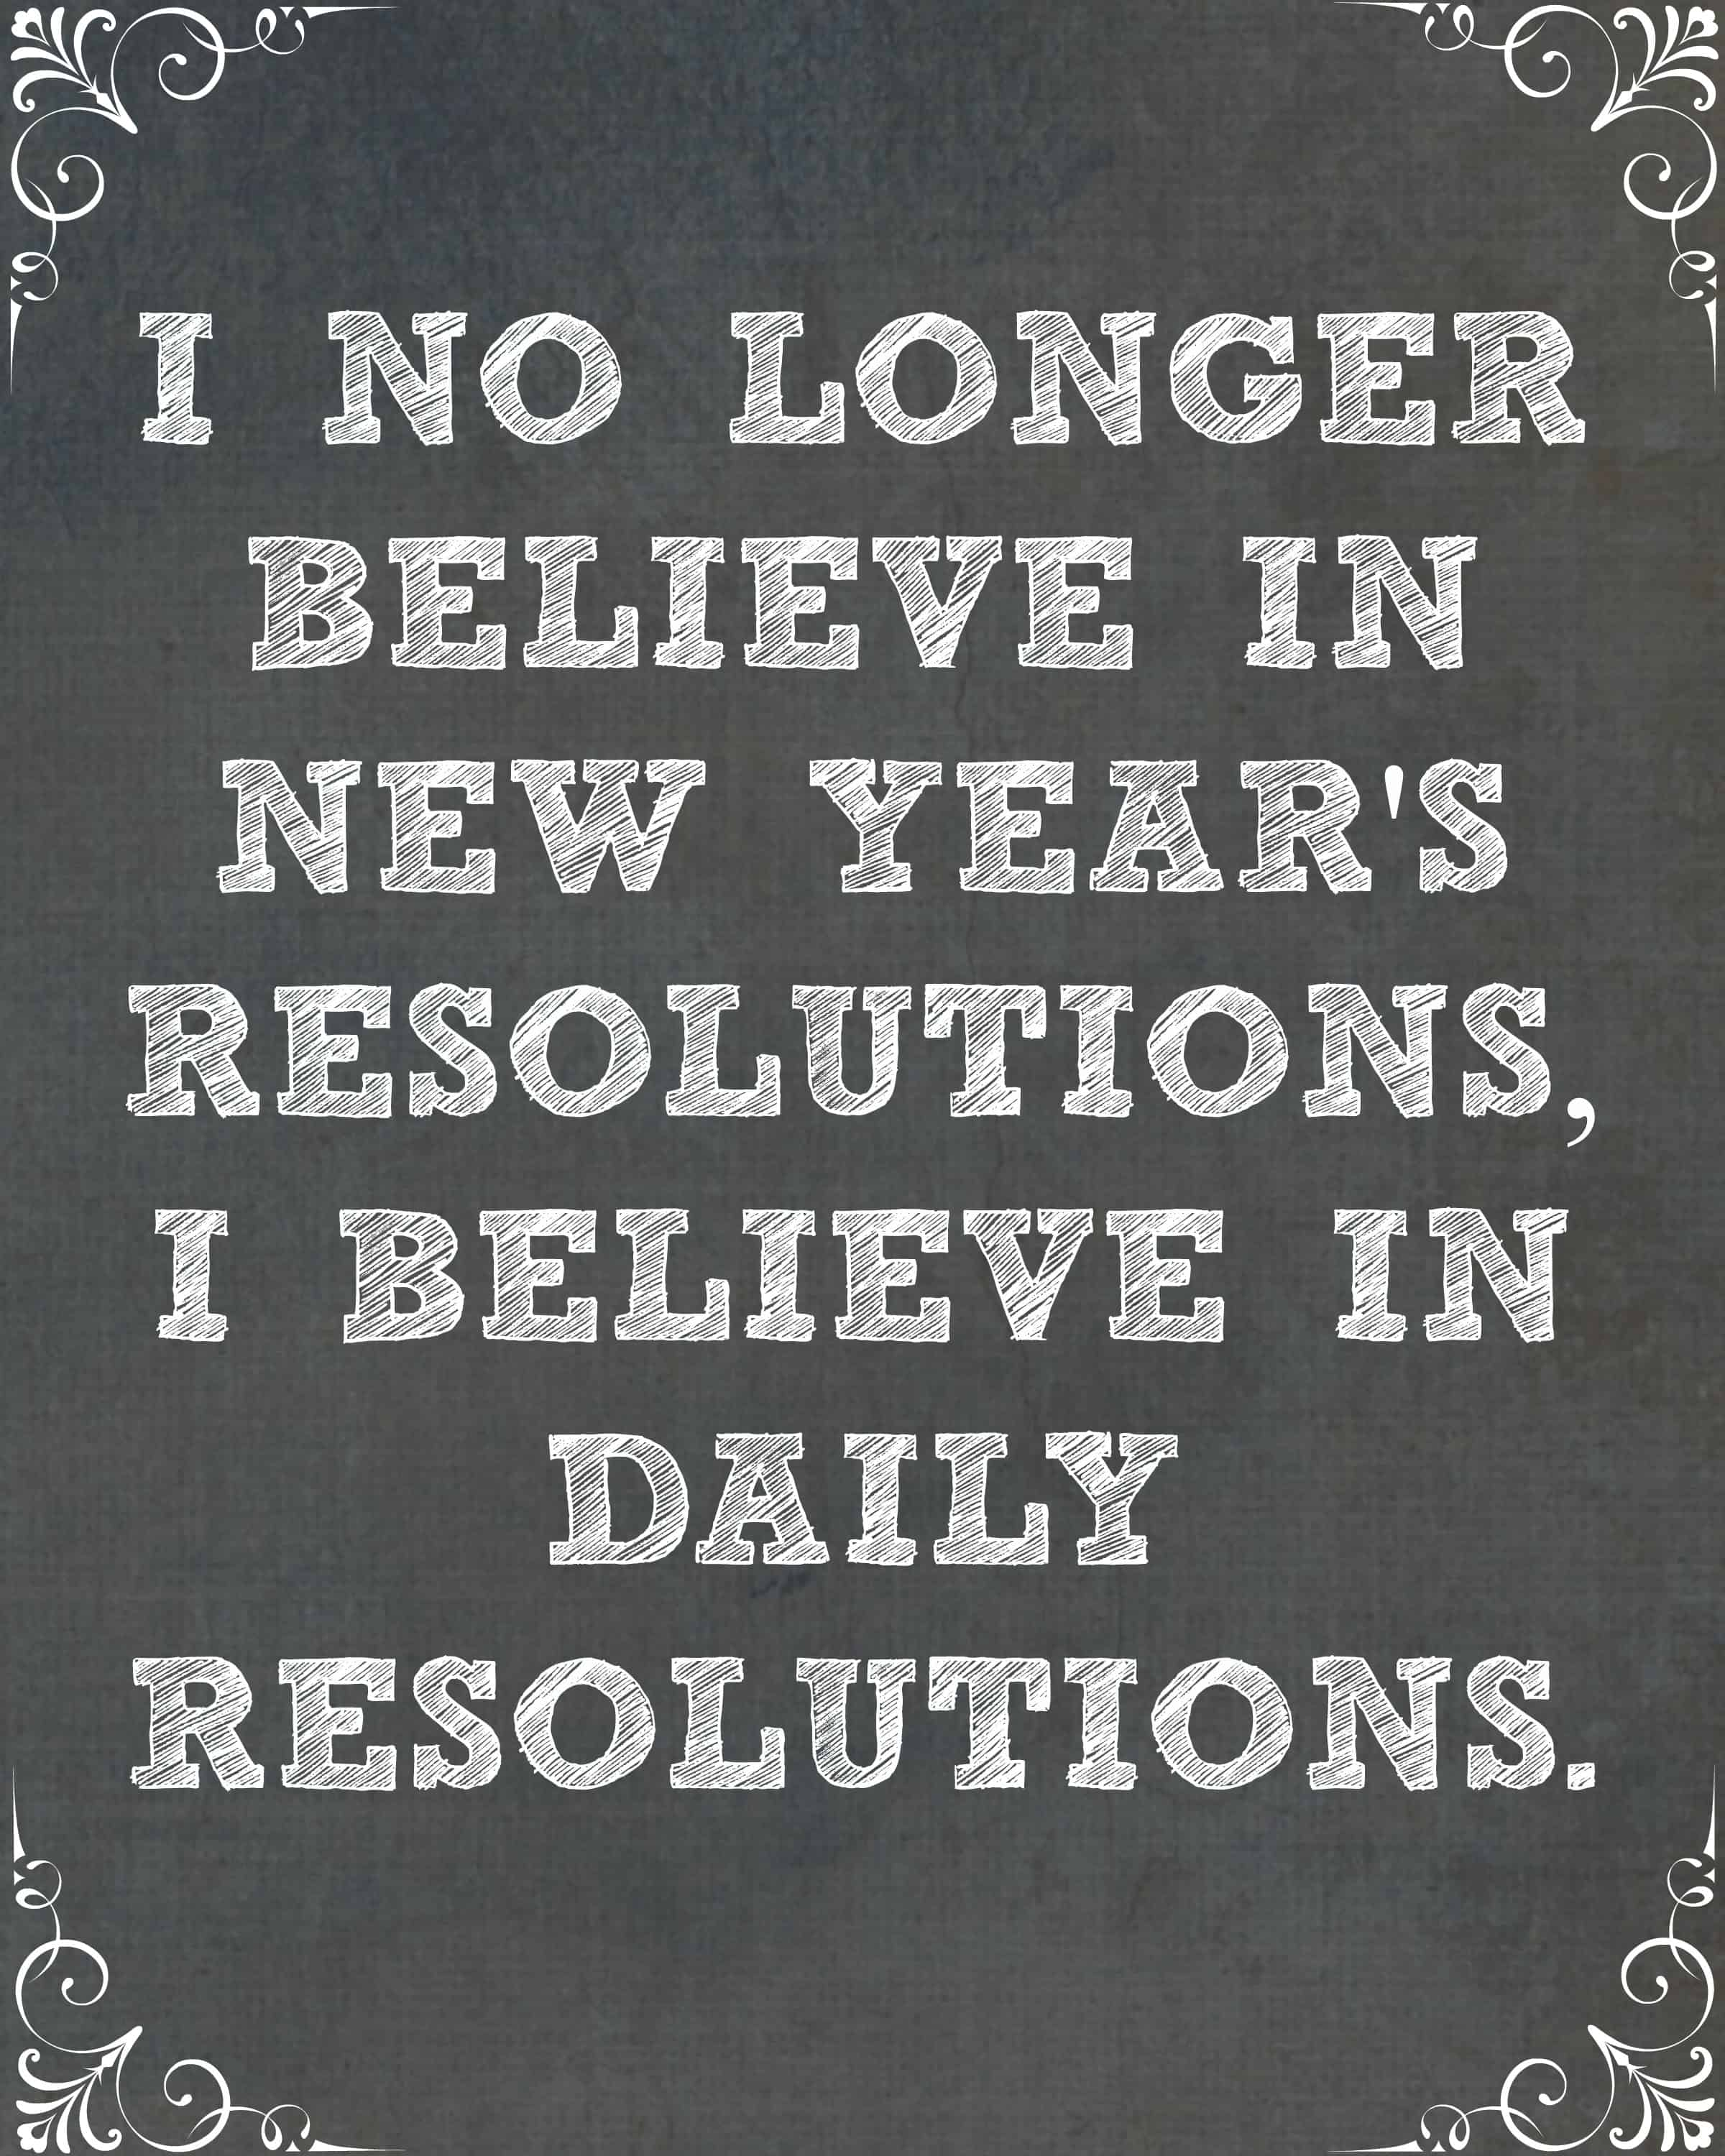 Any New Year Resolutions